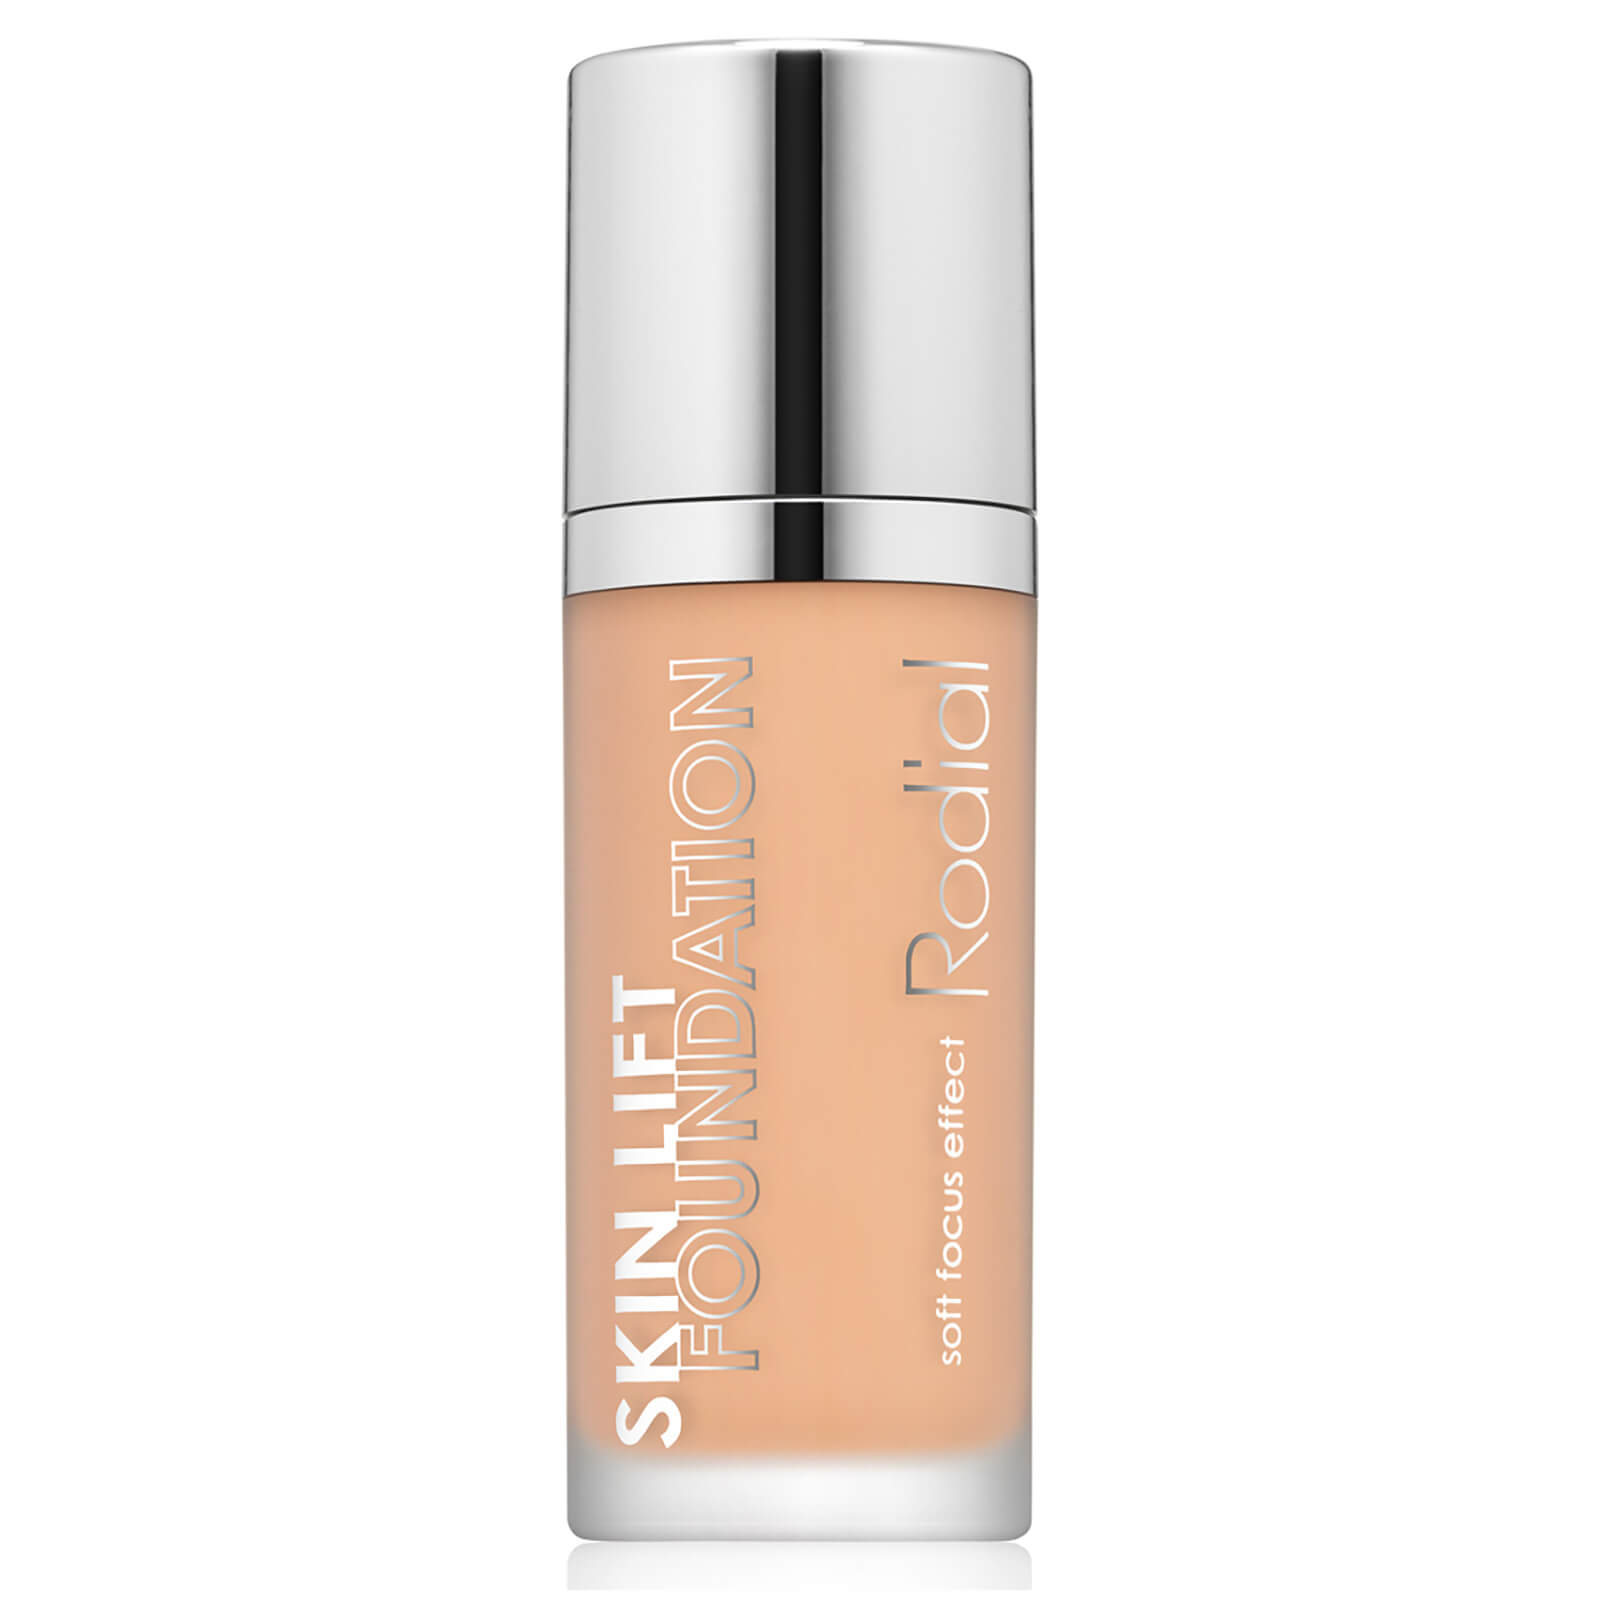 Image of Rodial Skin Lift Foundation 25ml (Various Shades) - 4 Biscuit